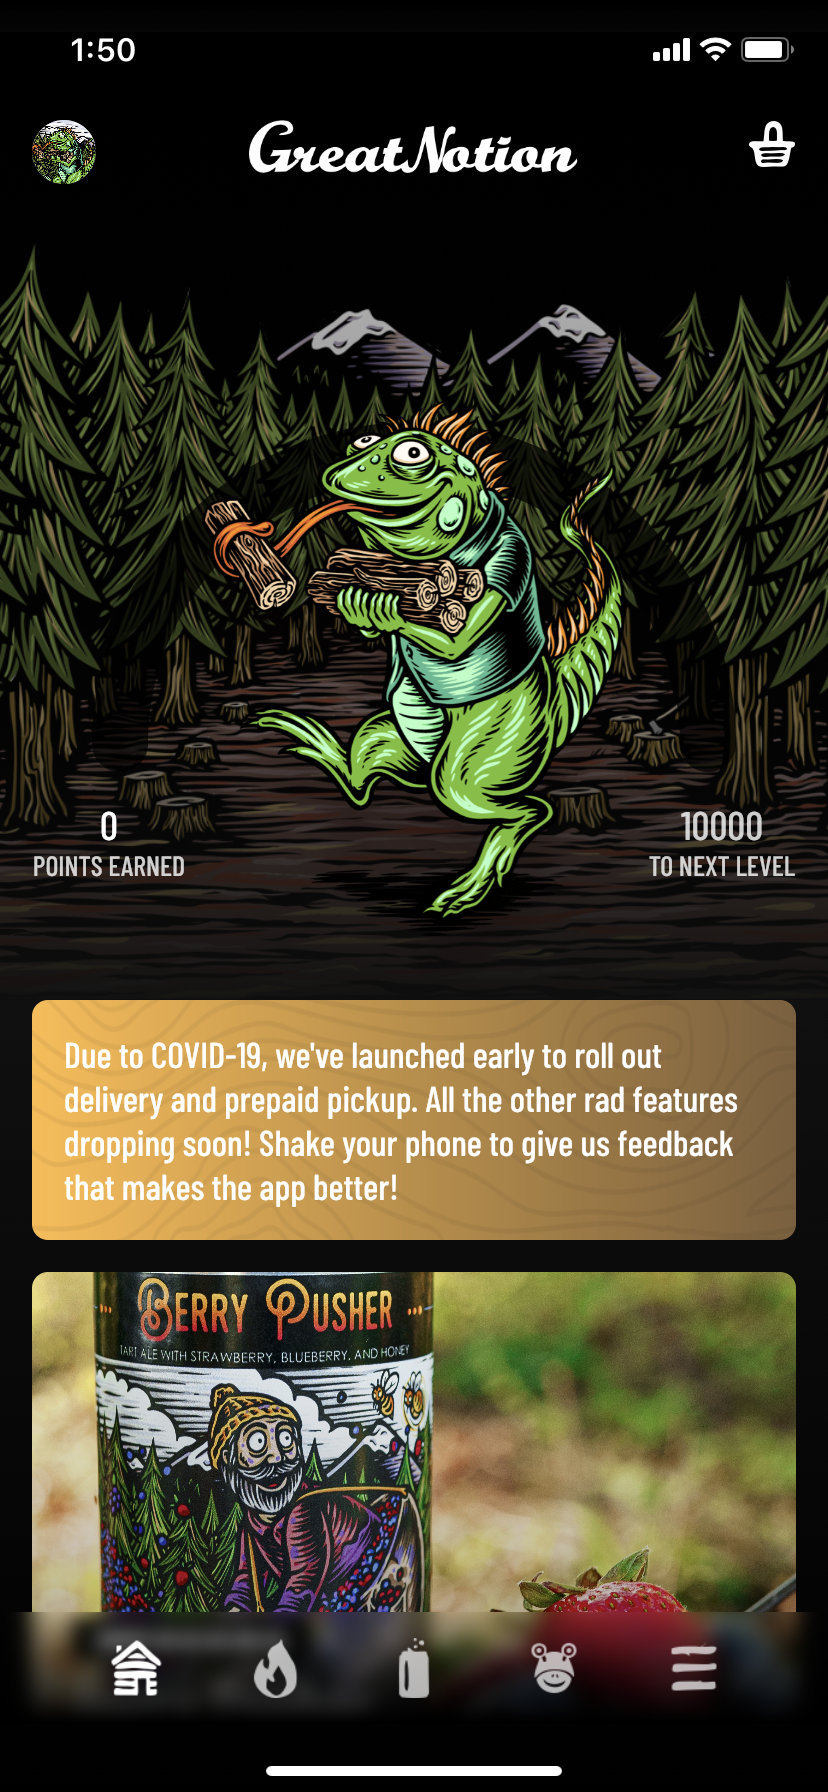 The Great Notion Brewing app has launched for Apple iOS.